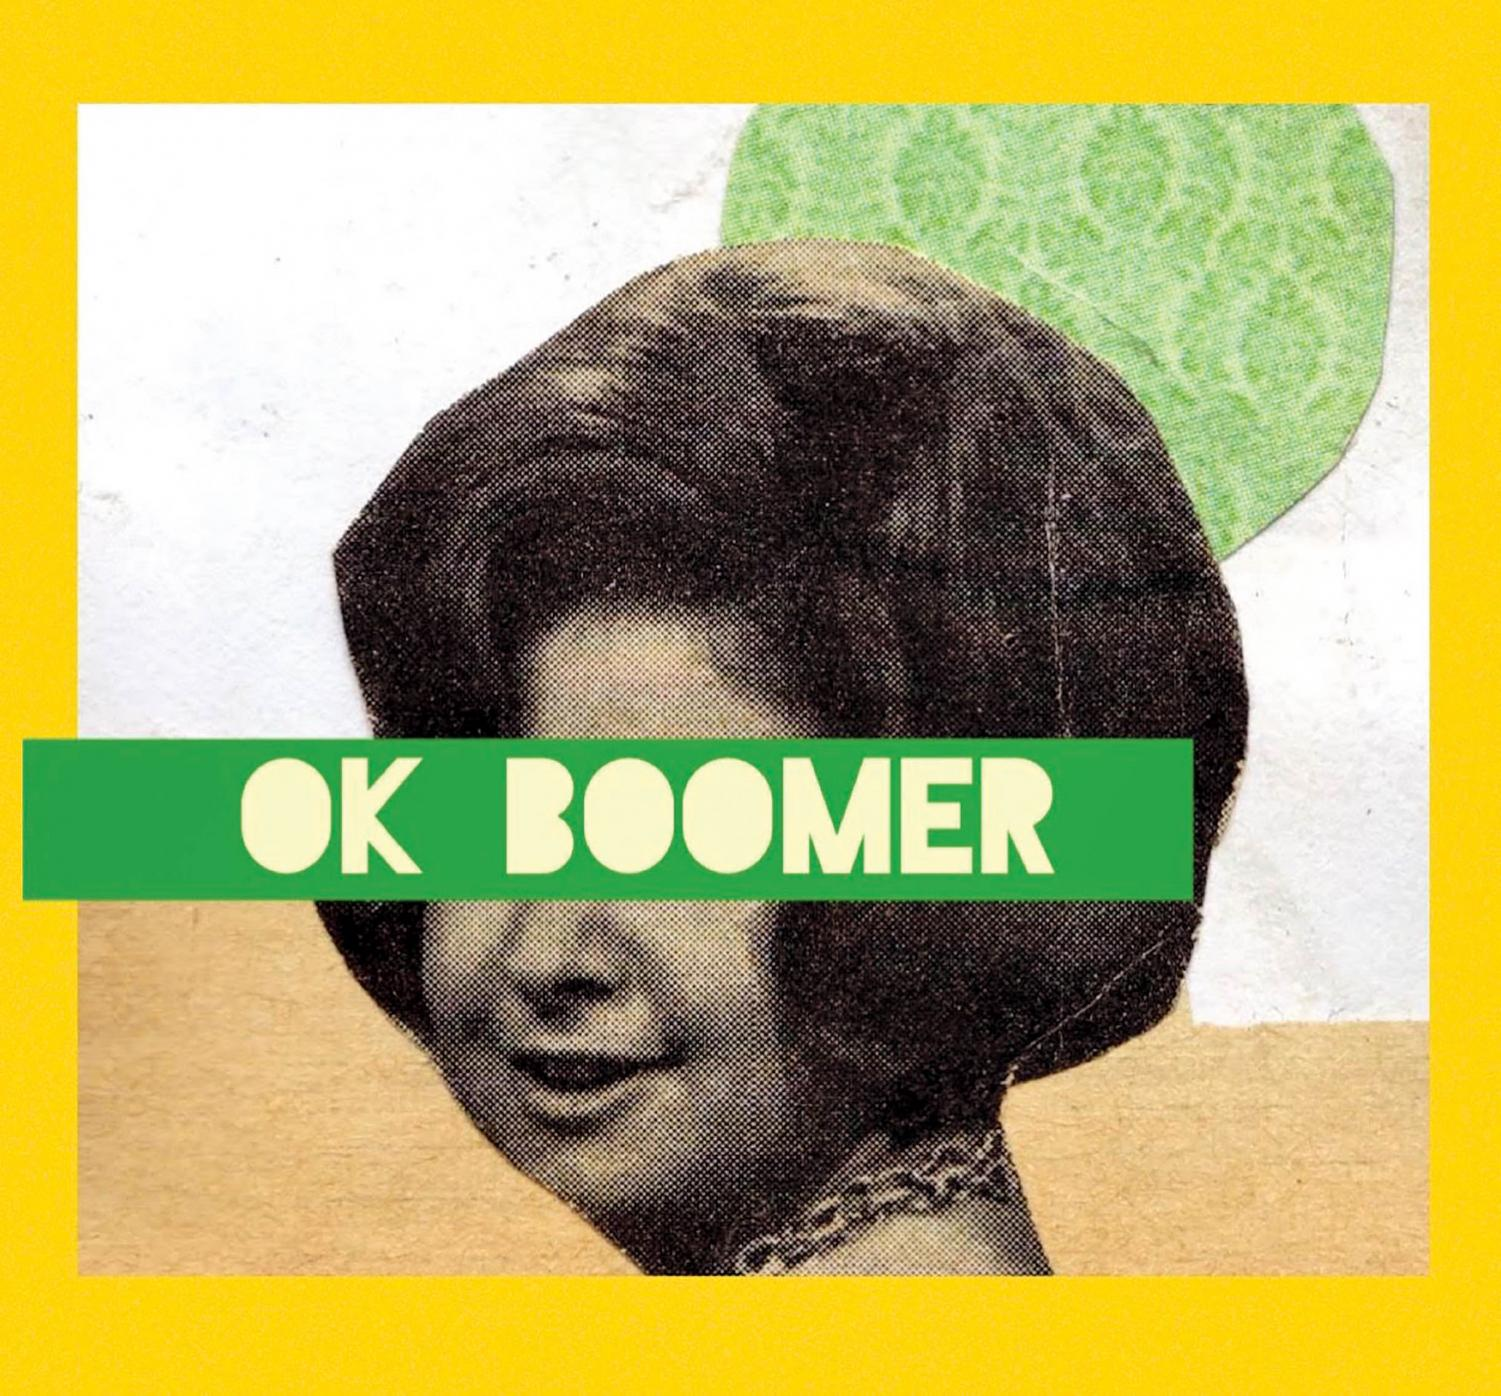 The phrase 'Ok boomer' sparked viral attention online after Tik Tok user @linzrinzz showed an elderly man criticizing millennials for thinking that their